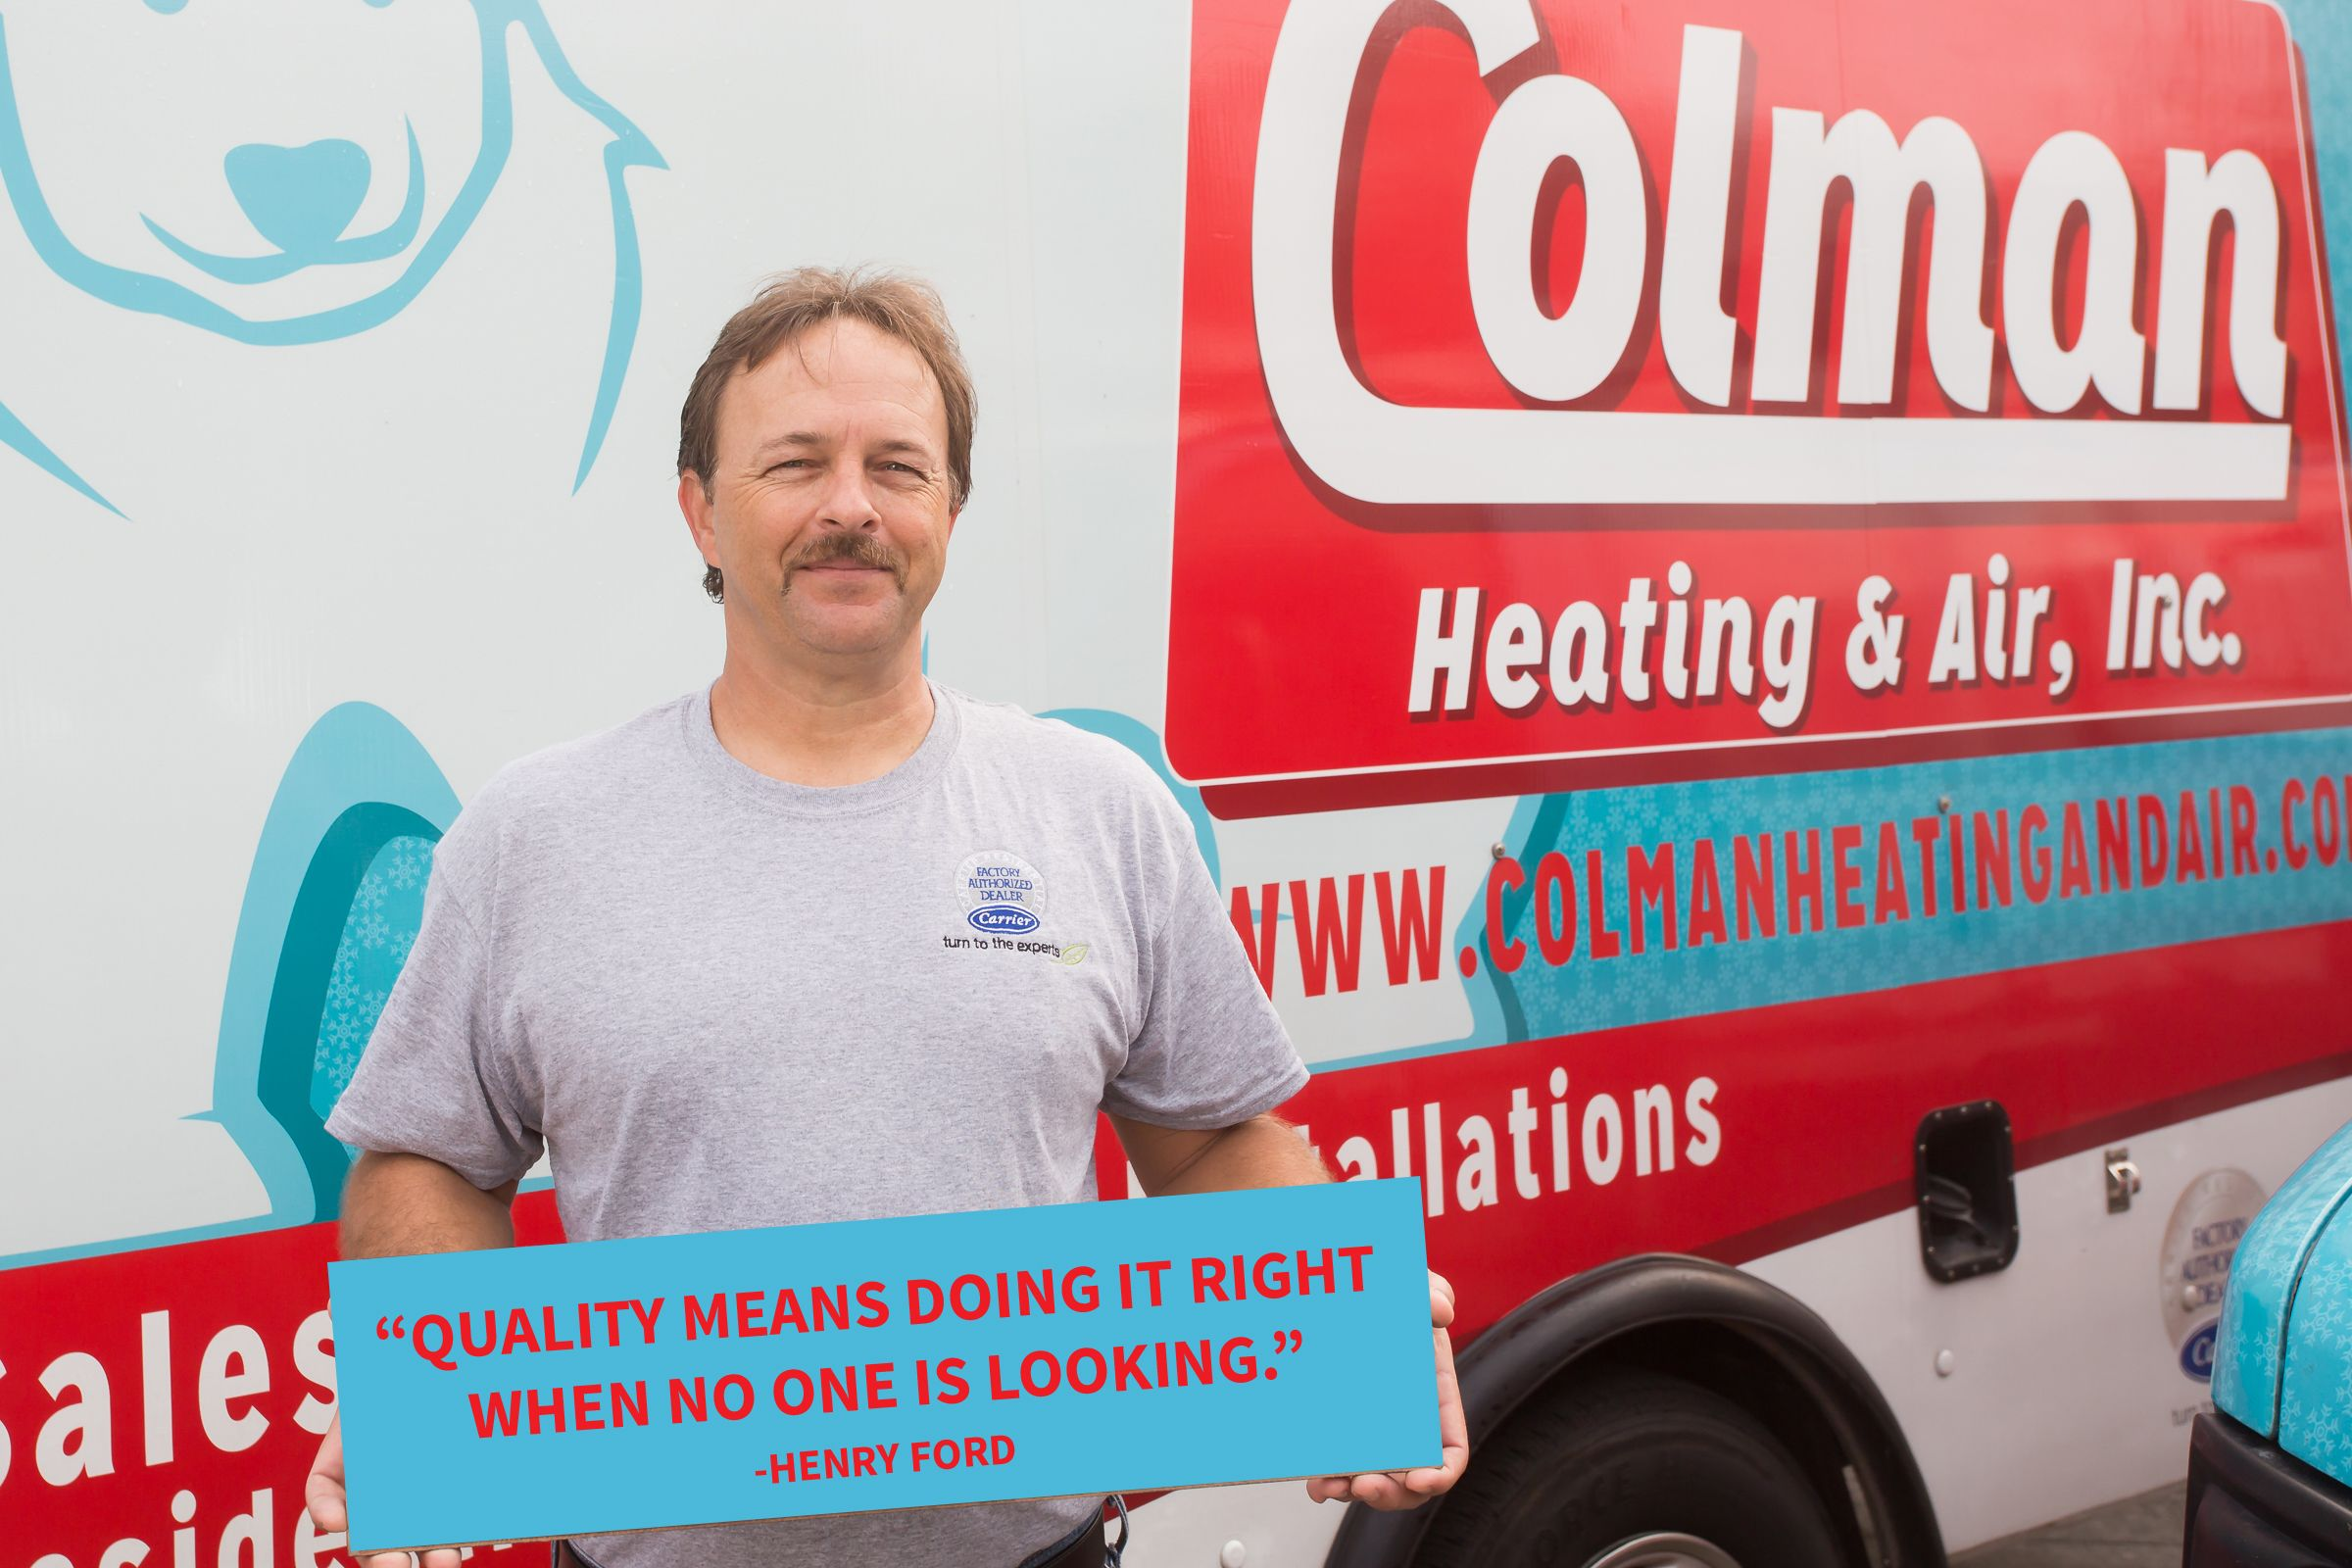 At Colman Heating and Air Conditioning, we have one goal